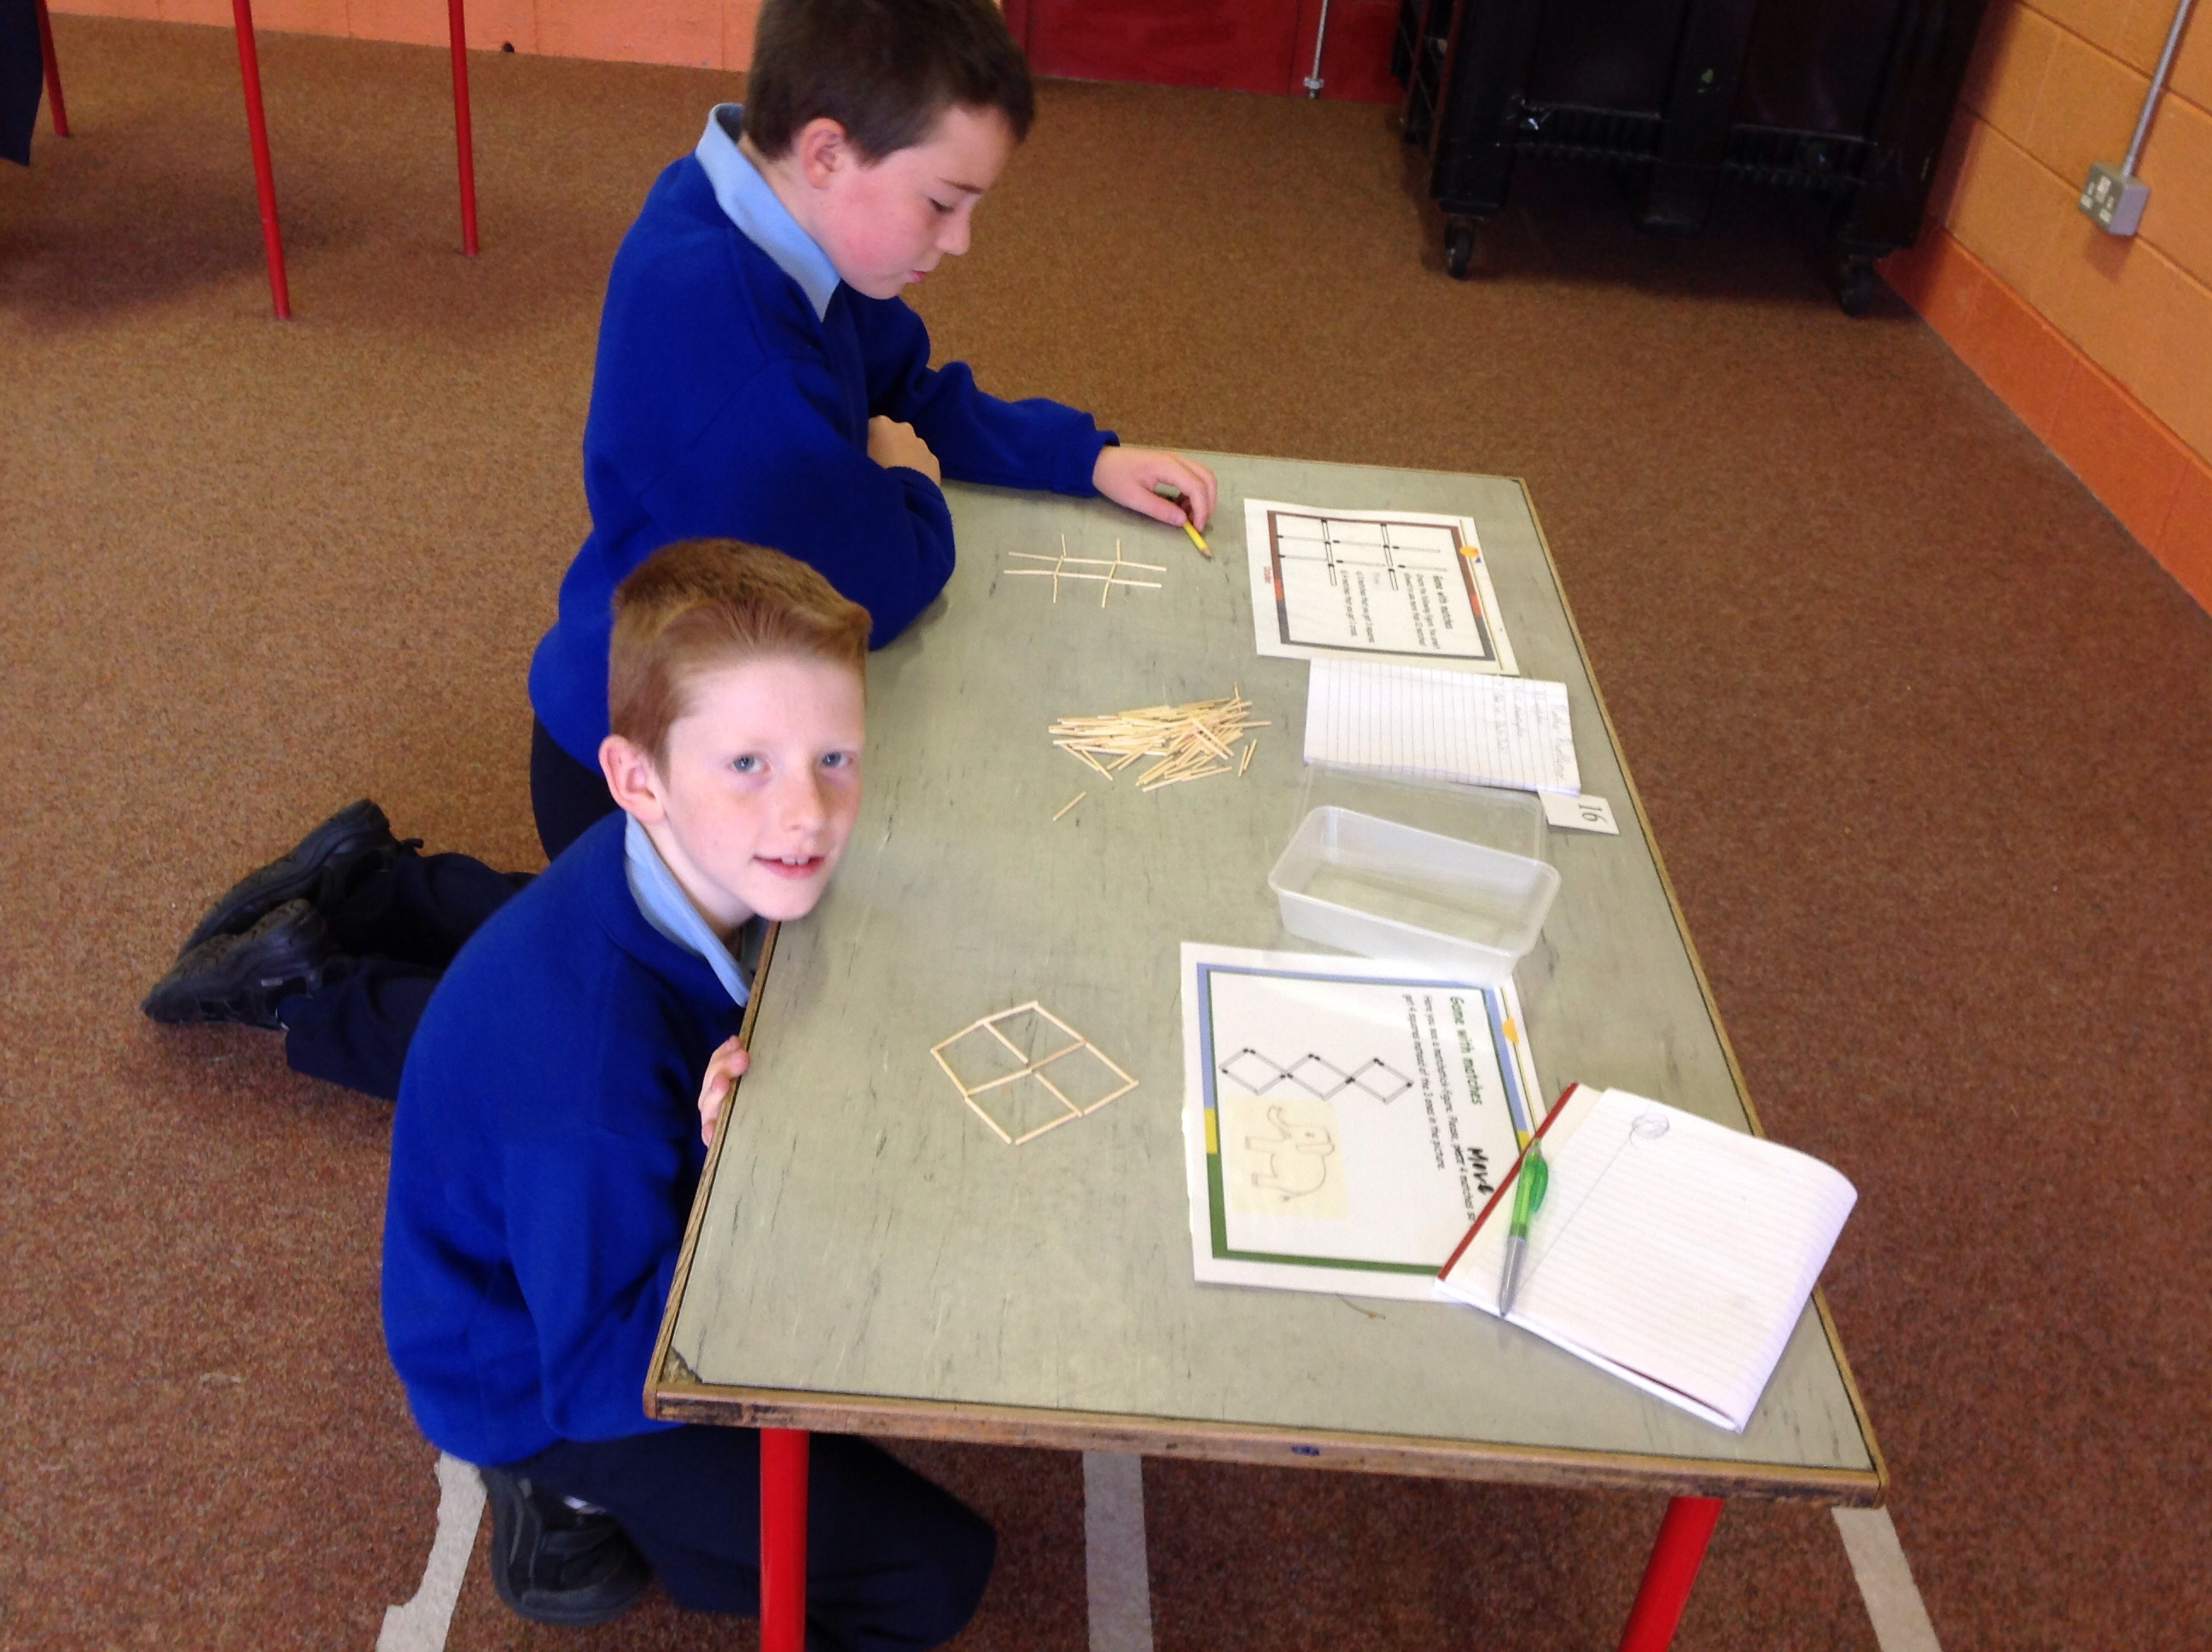 Solving matchstick puzzles